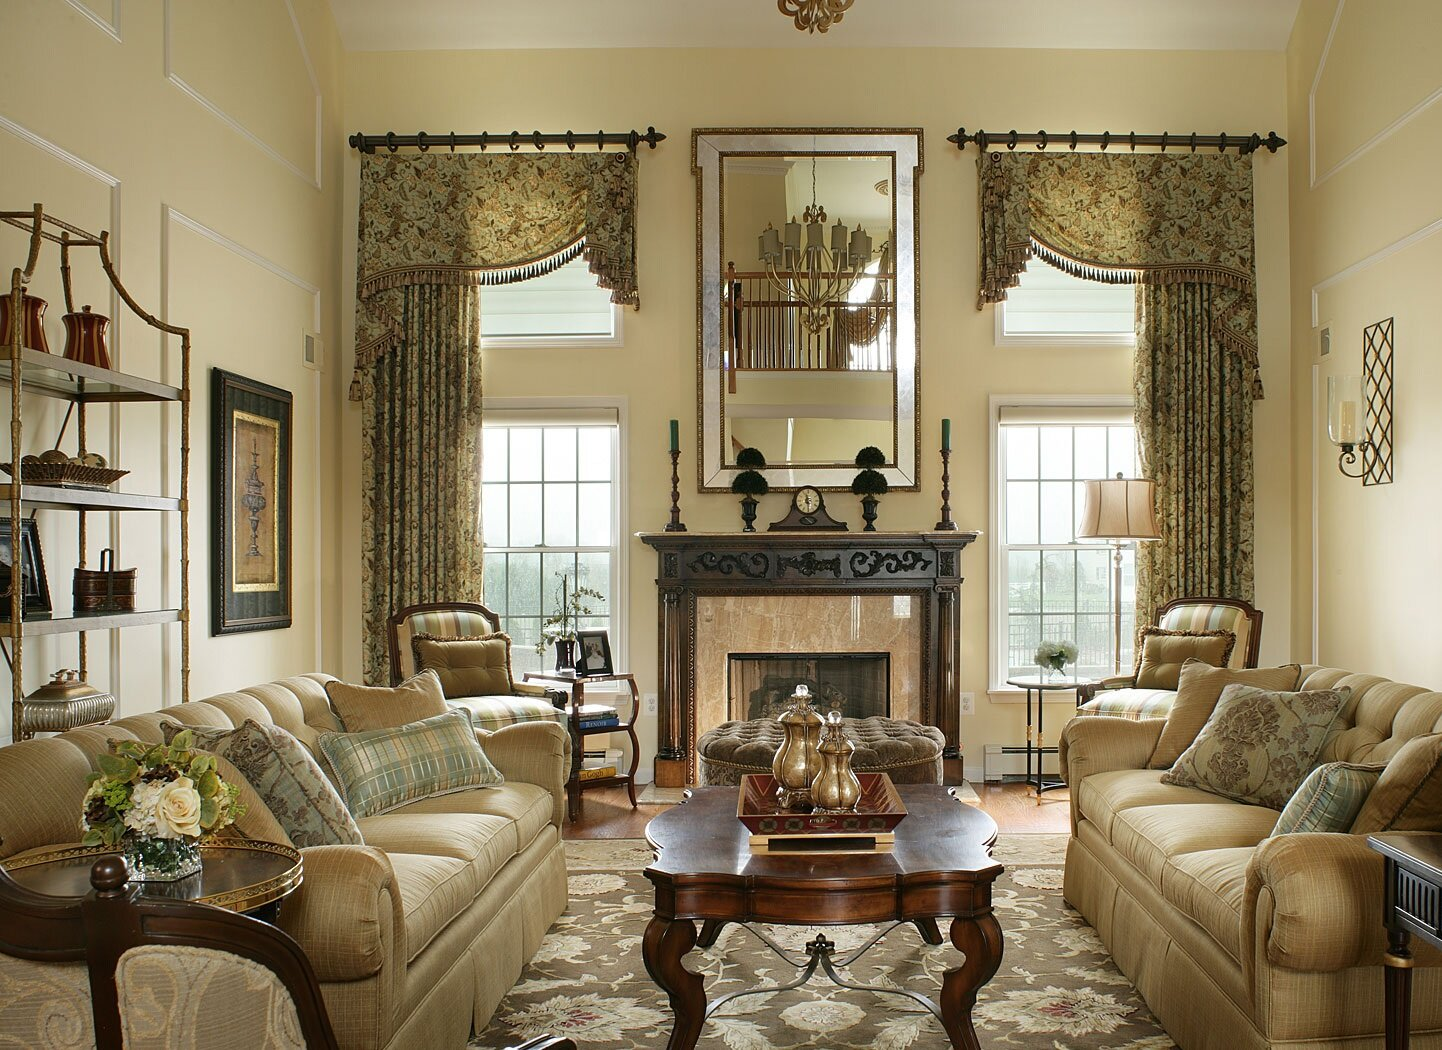 Valances for Windows | Living Room Valances | Valance for Windows Curtains